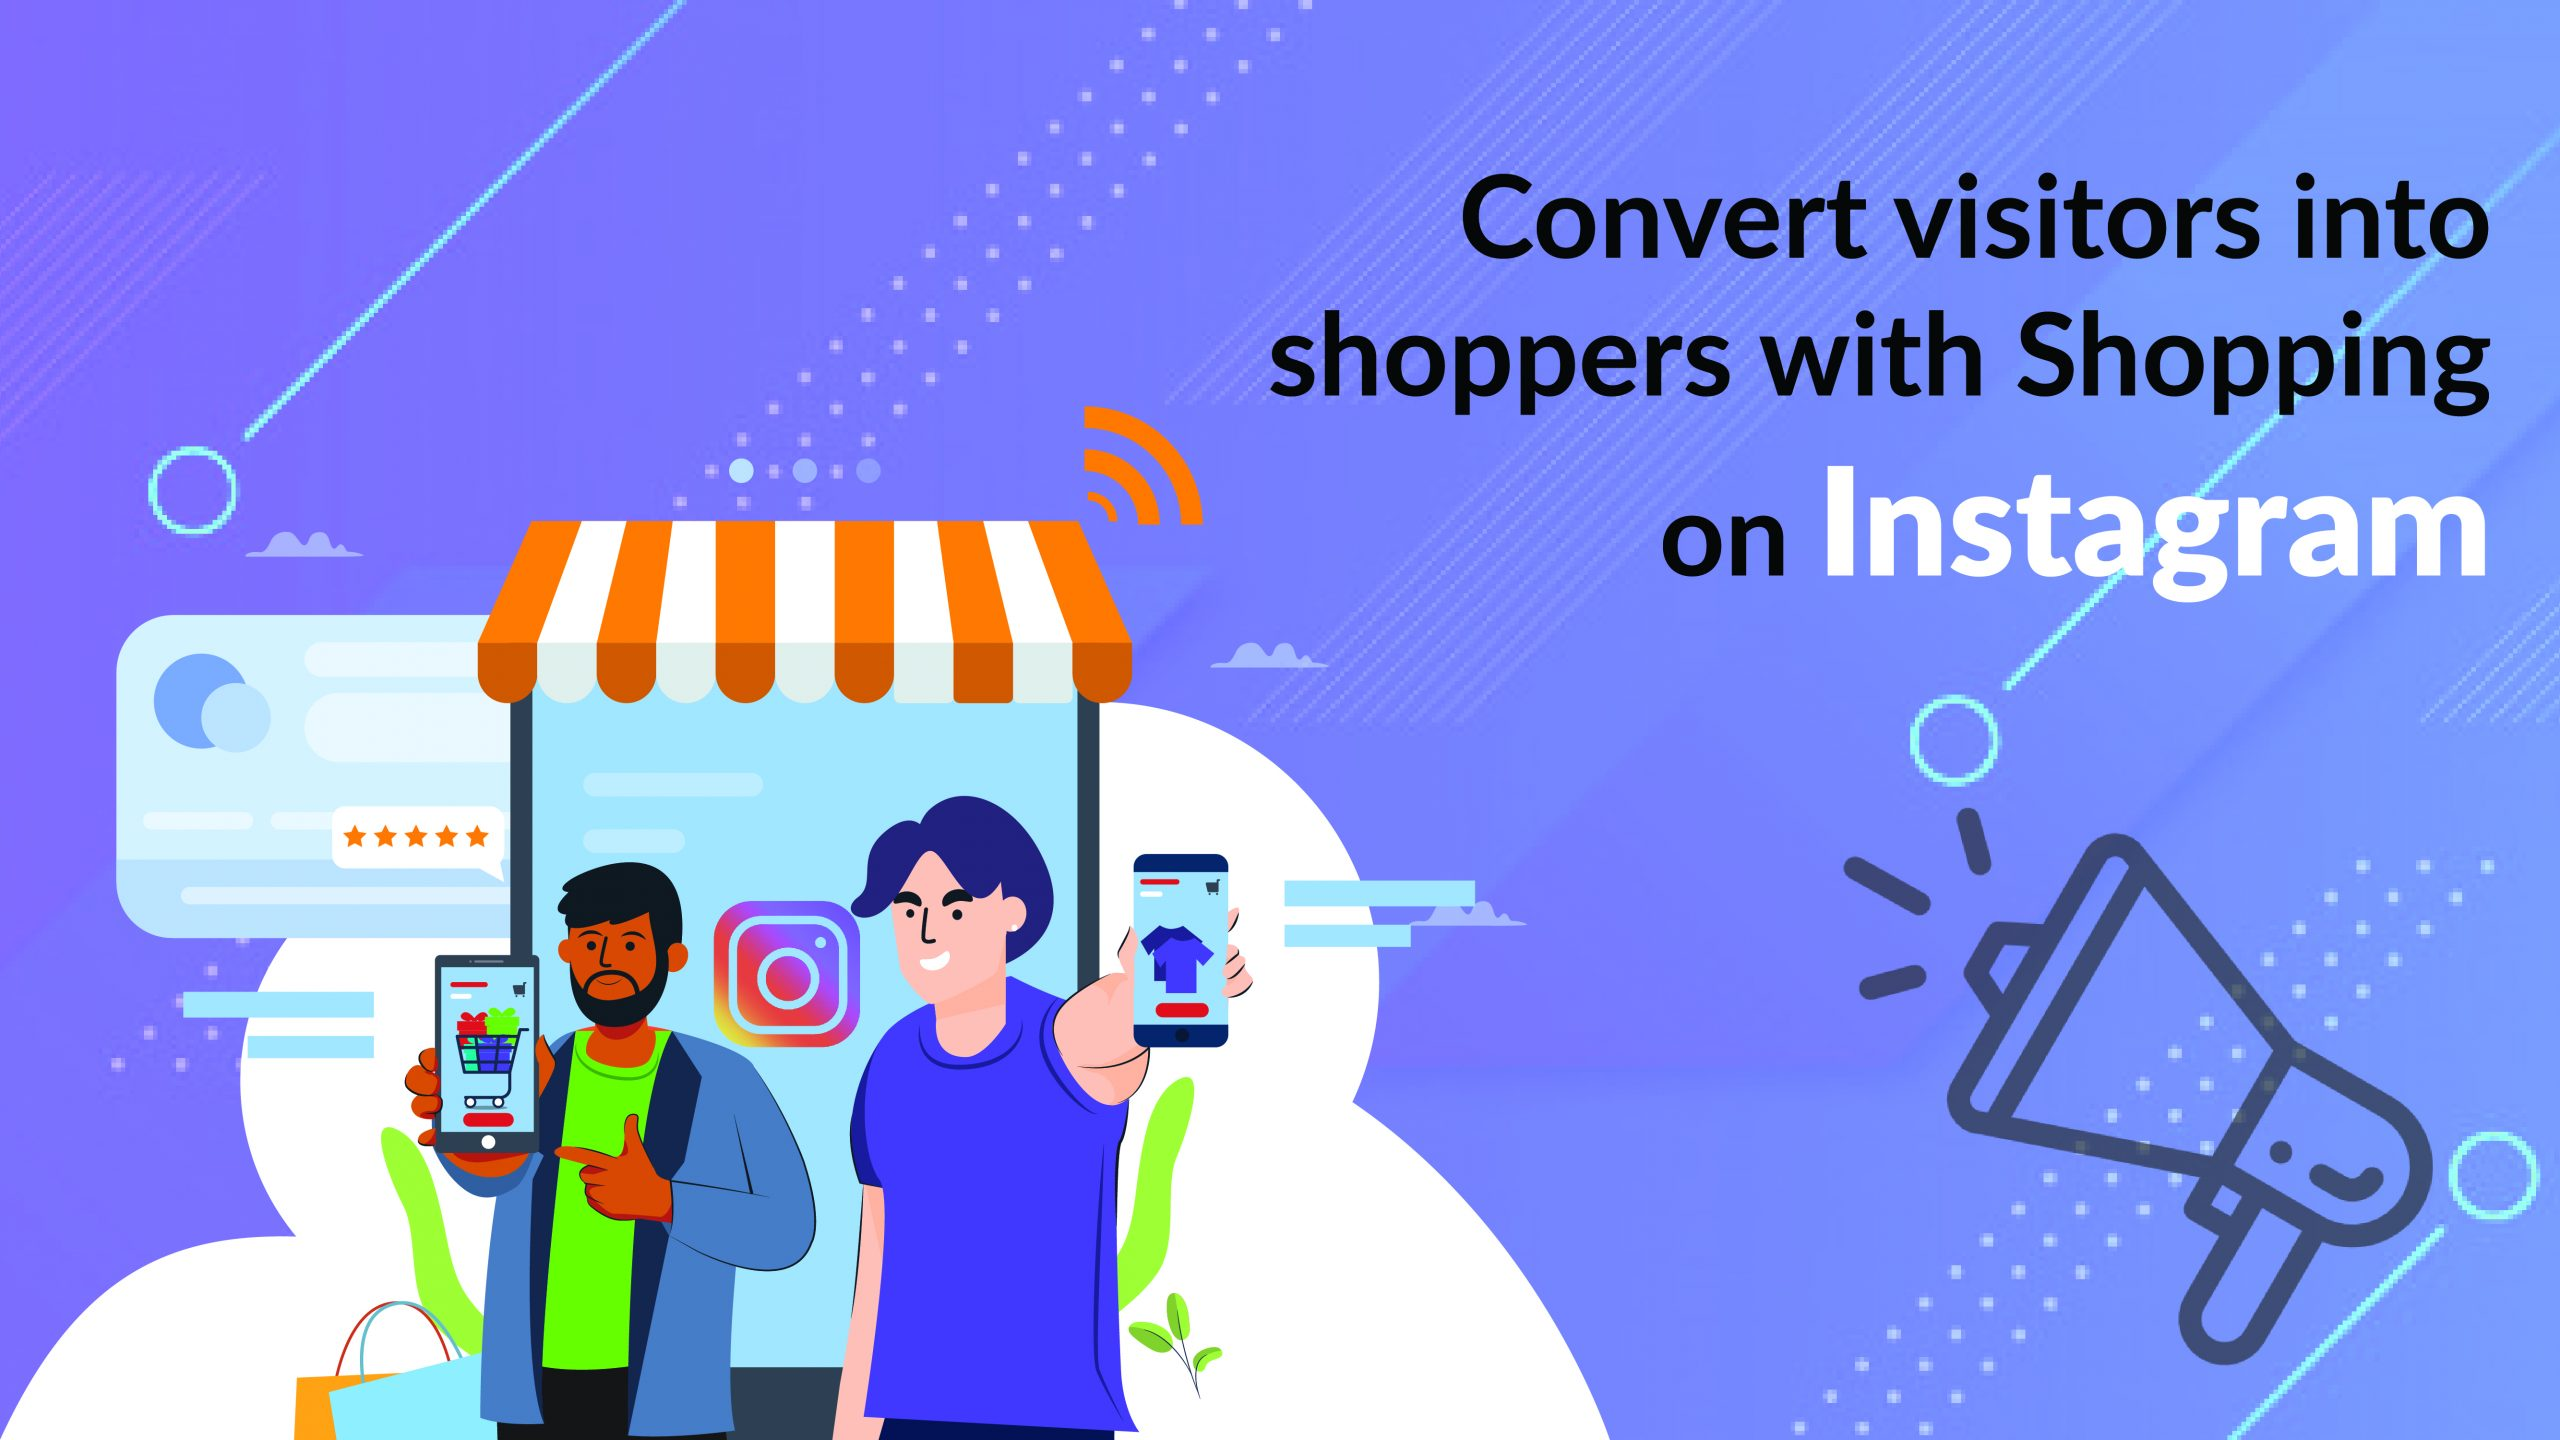 3.Convert visitors into shoppers with Shopping on Instagram